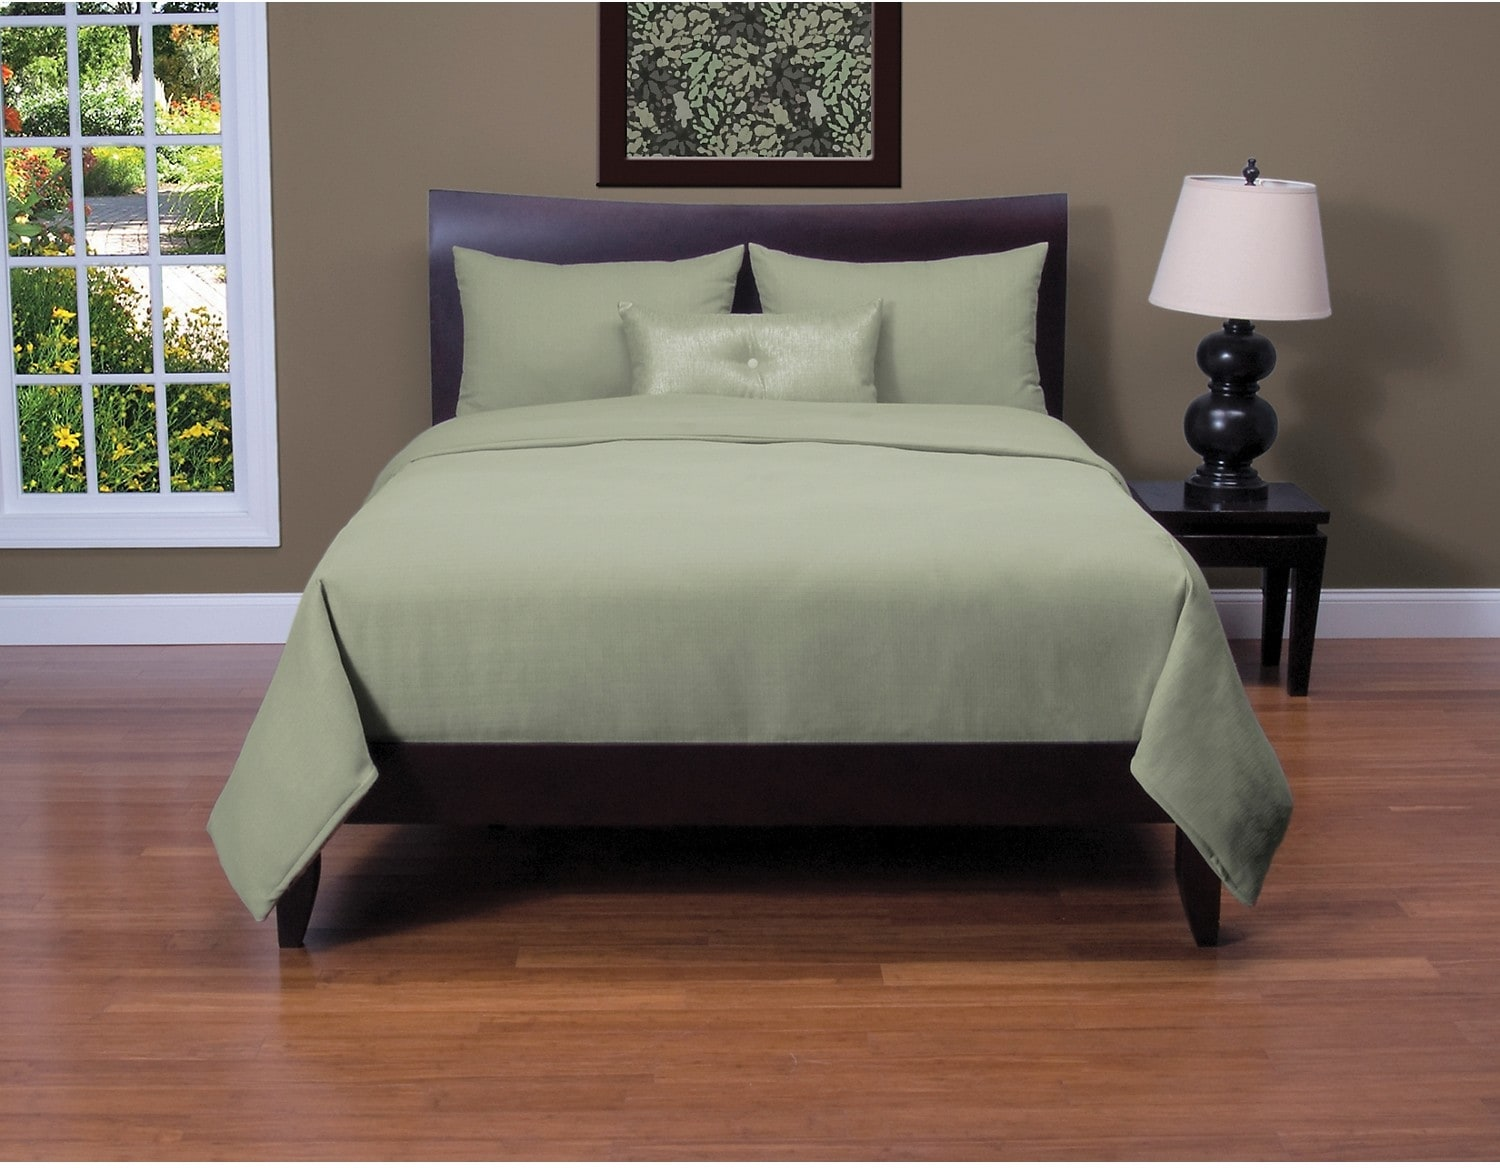 Mattresses and Bedding - Belfast Sage 4 Piece Full Duvet Cover Set